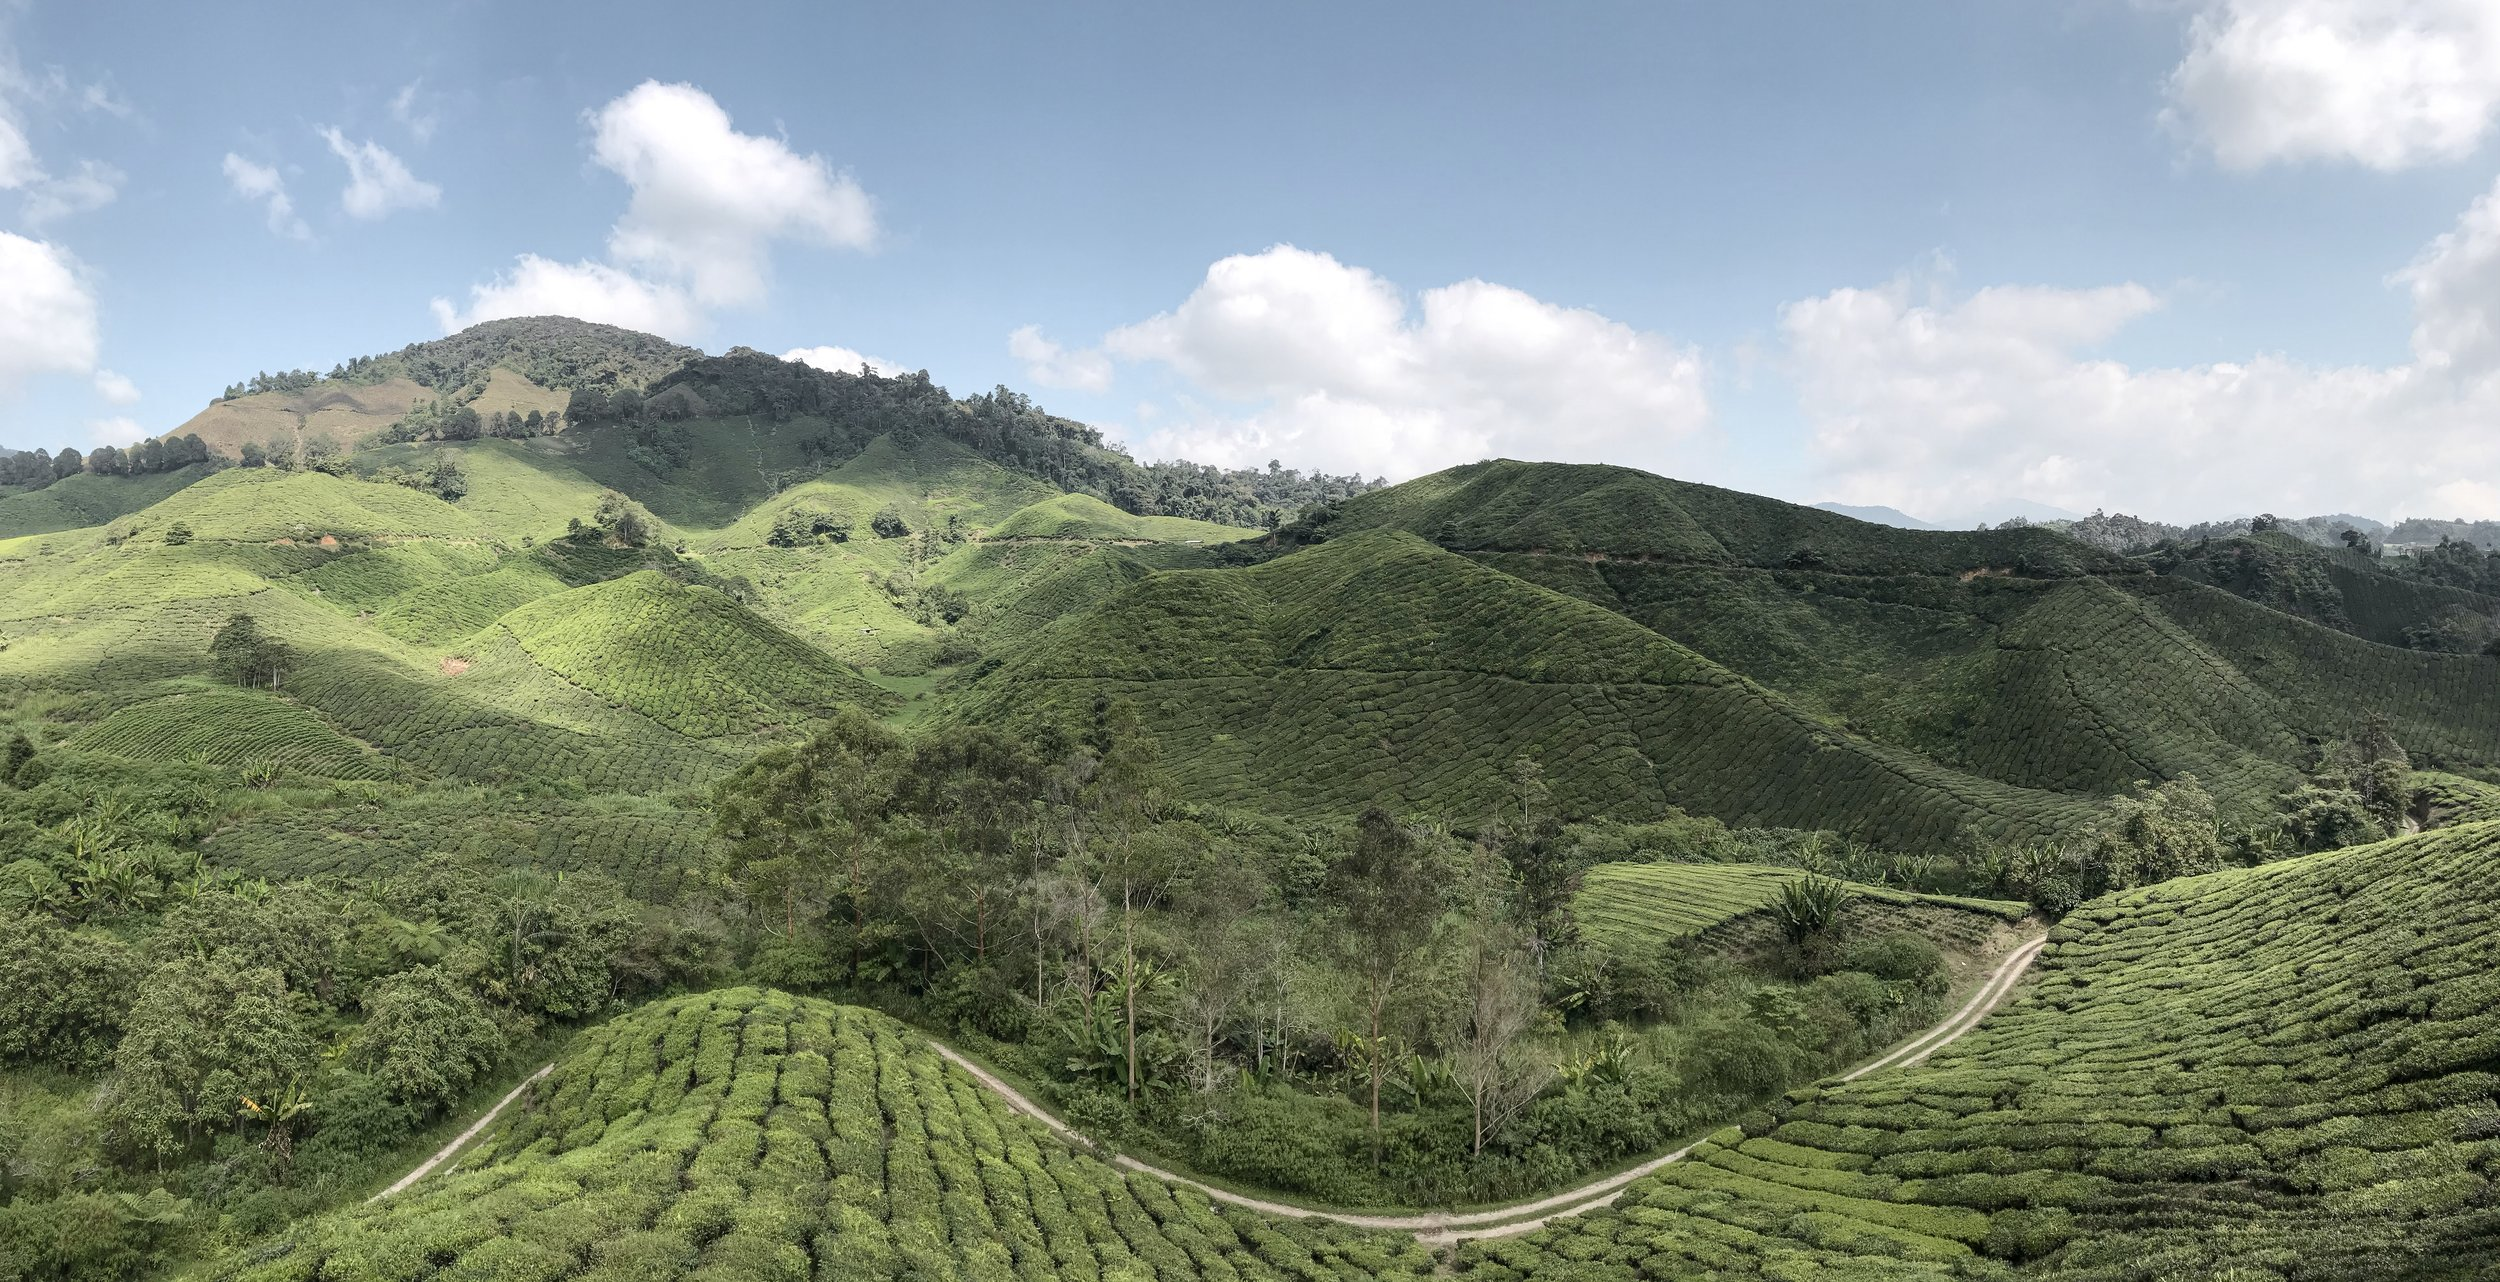 A panoramic shot of the hills at the BOH Tea Farm.